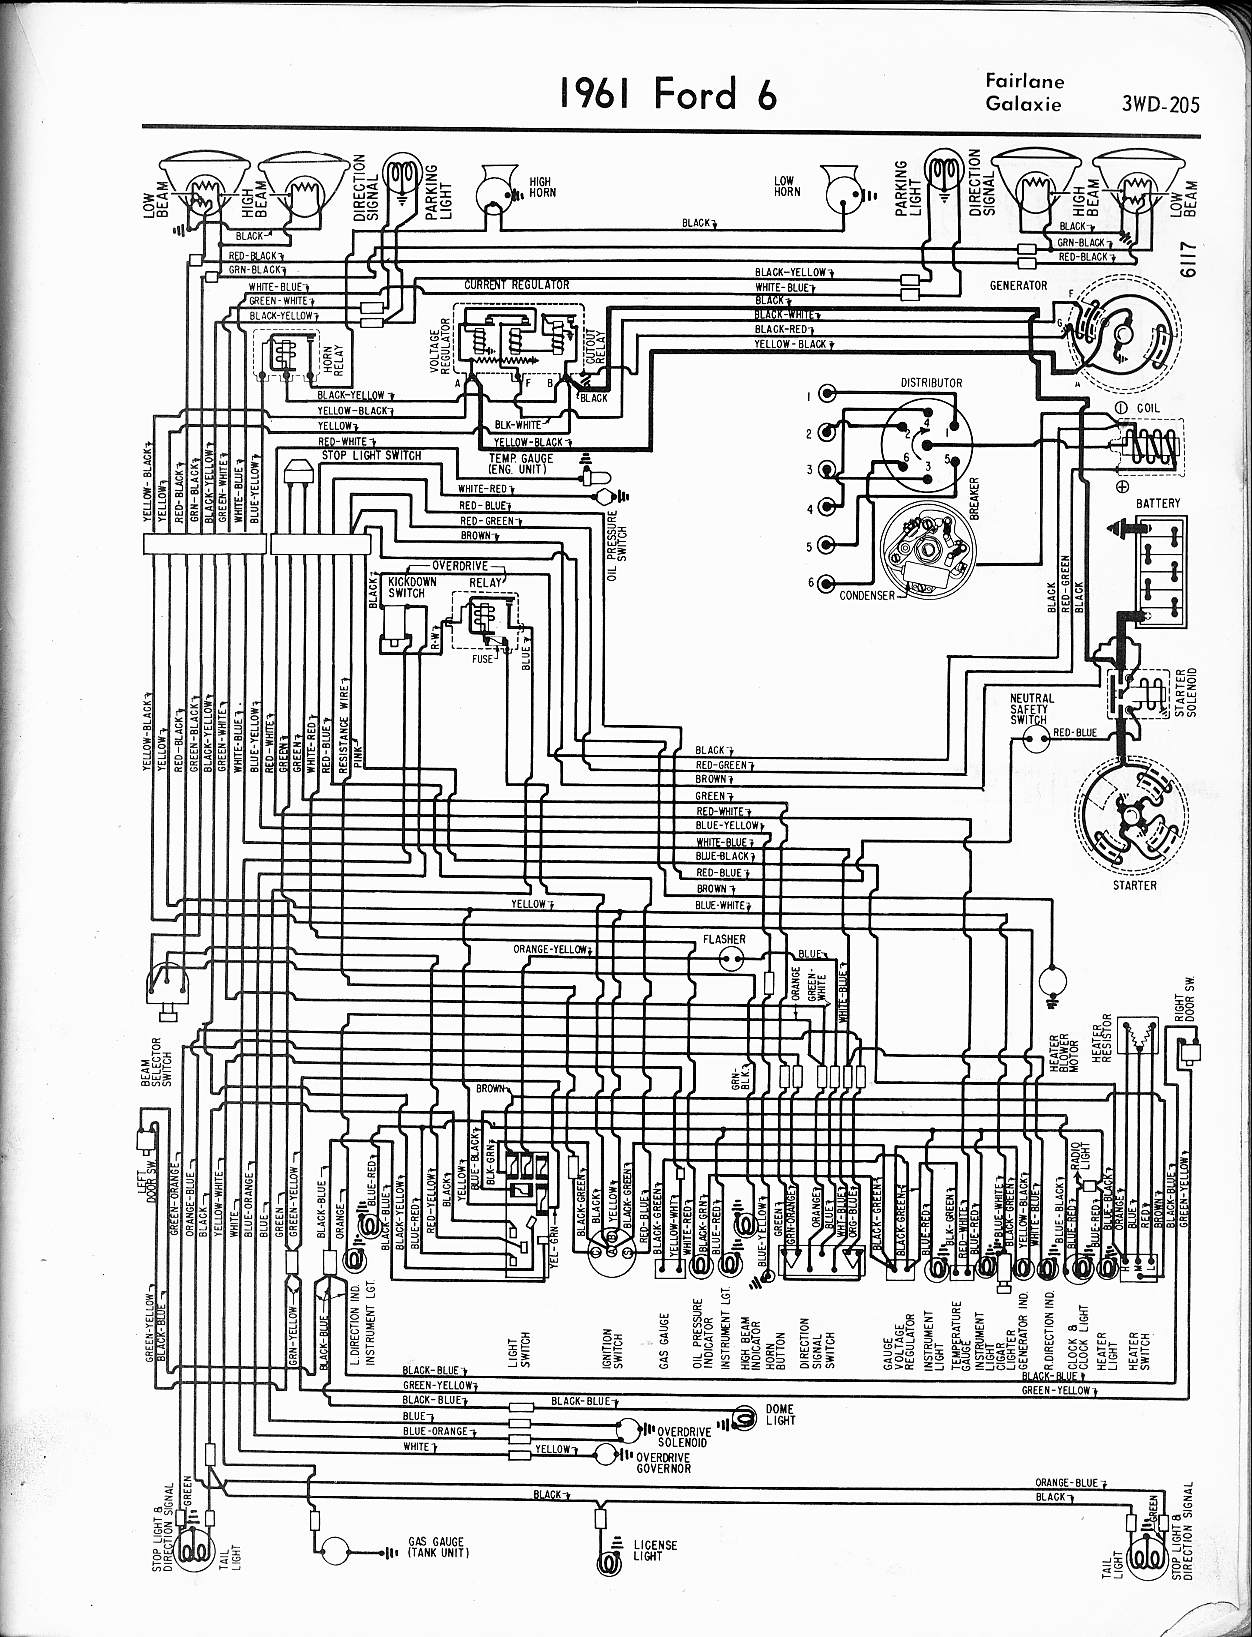 1961 ford wiring diagram wiring diagram general 1961 Ford F100 Radiator